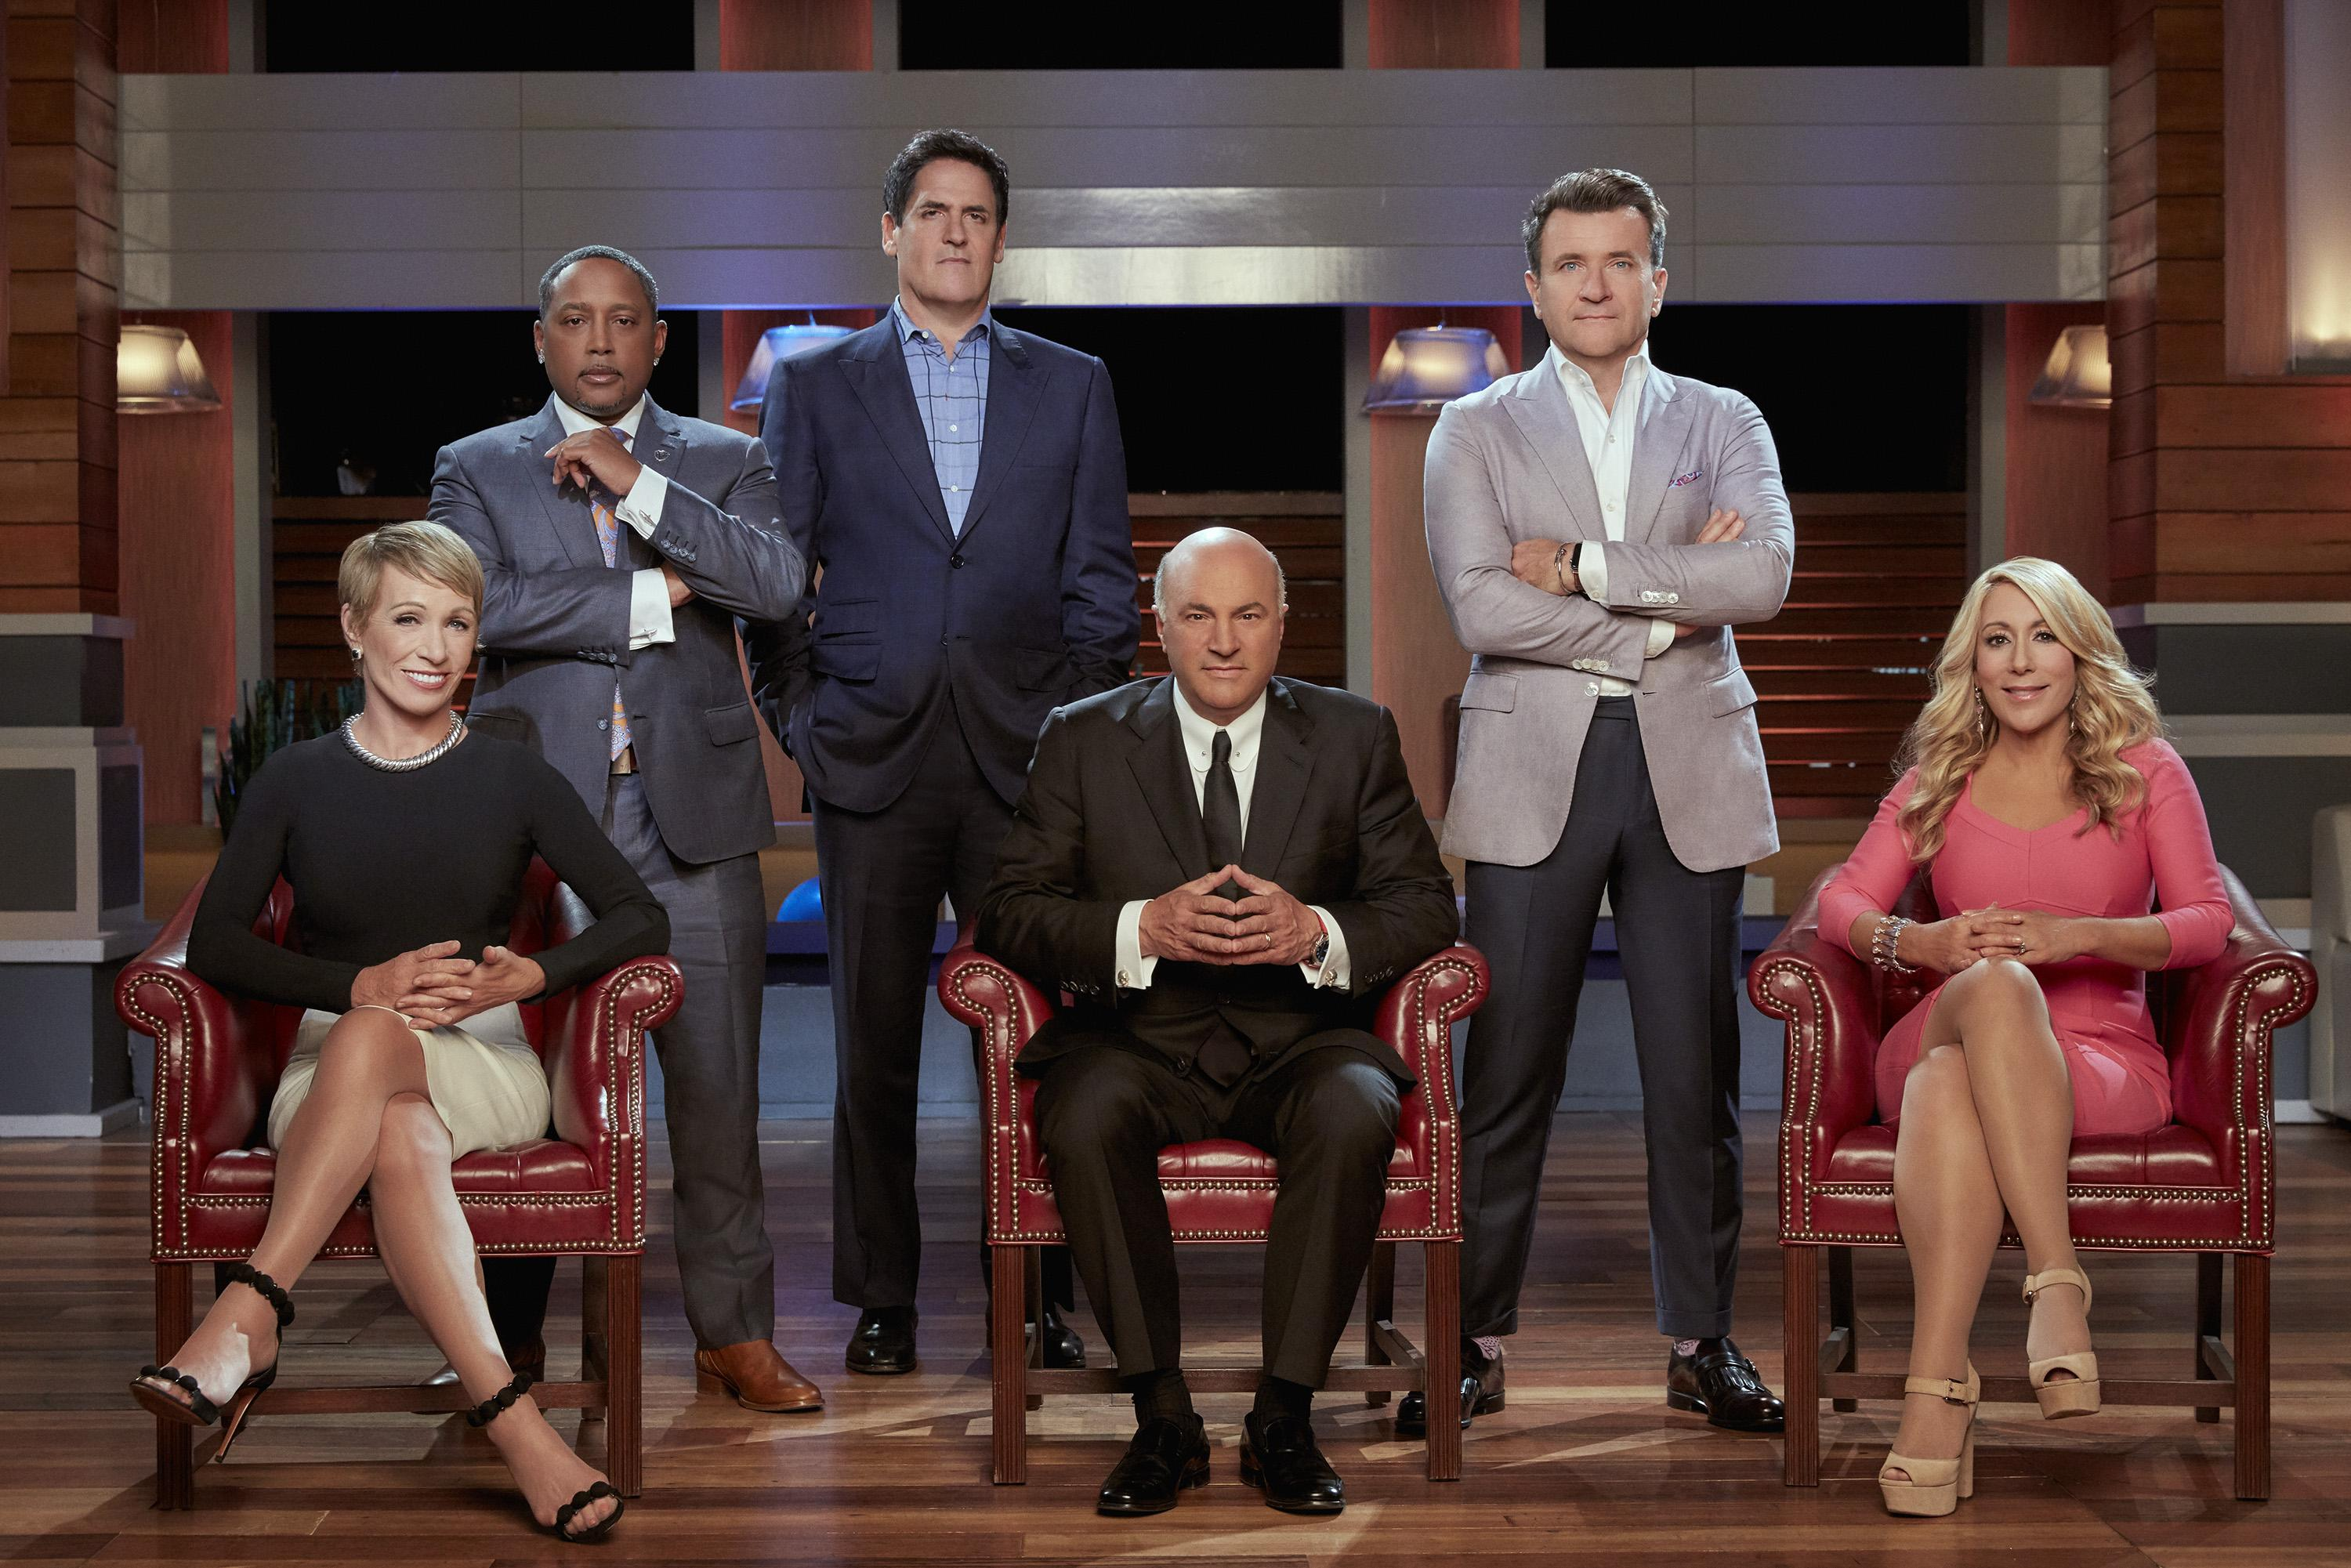 shark tank season 11 watch online